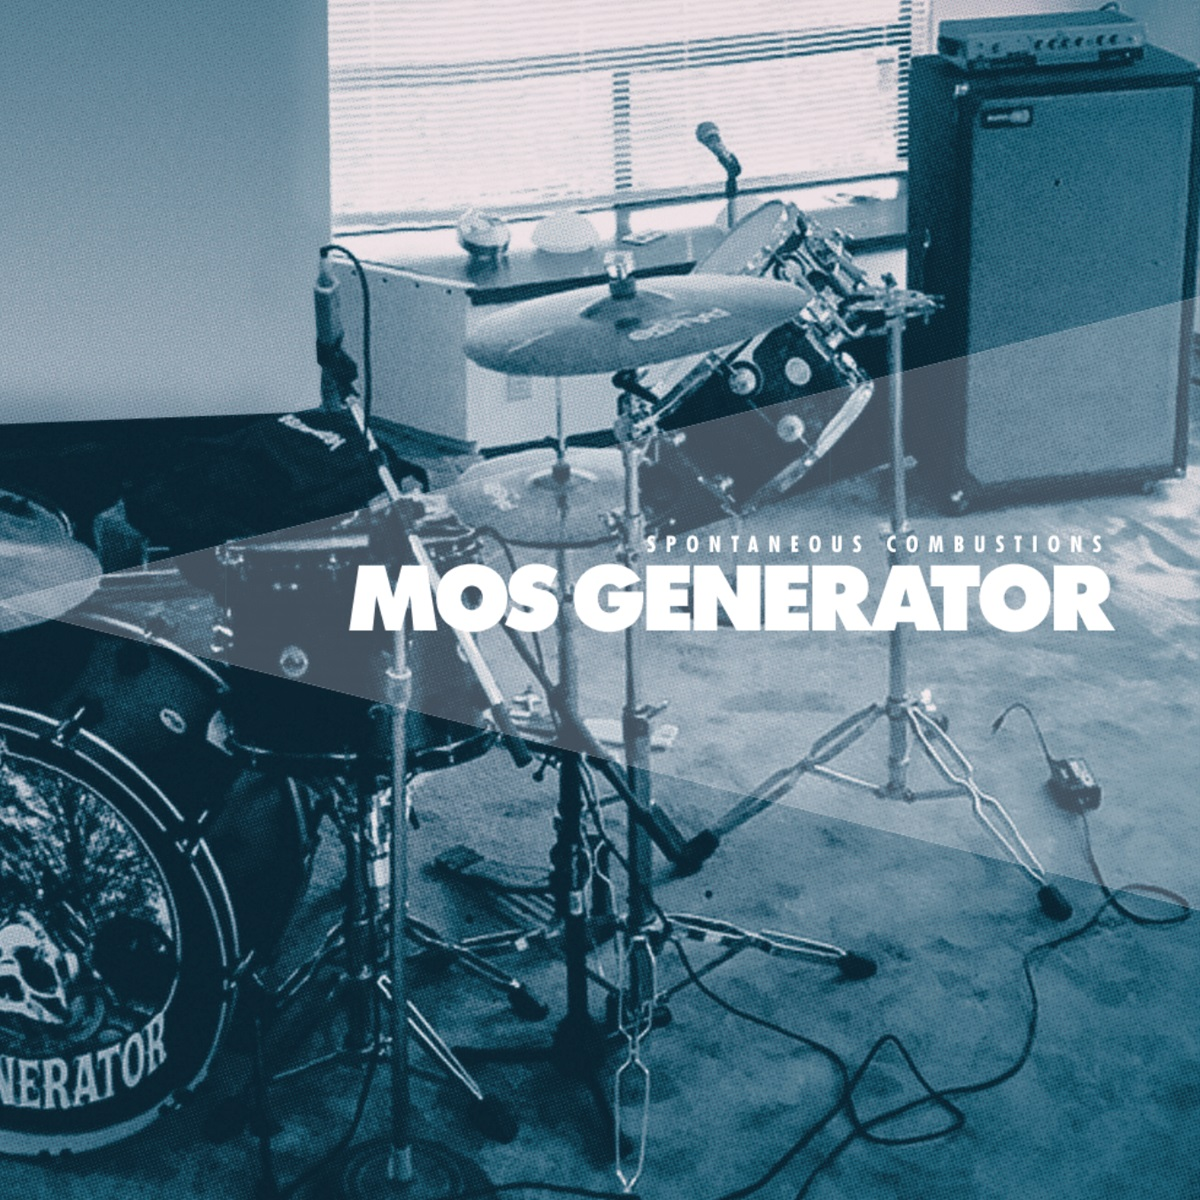 Mos Generator - Spontaneous Combustions [LP]